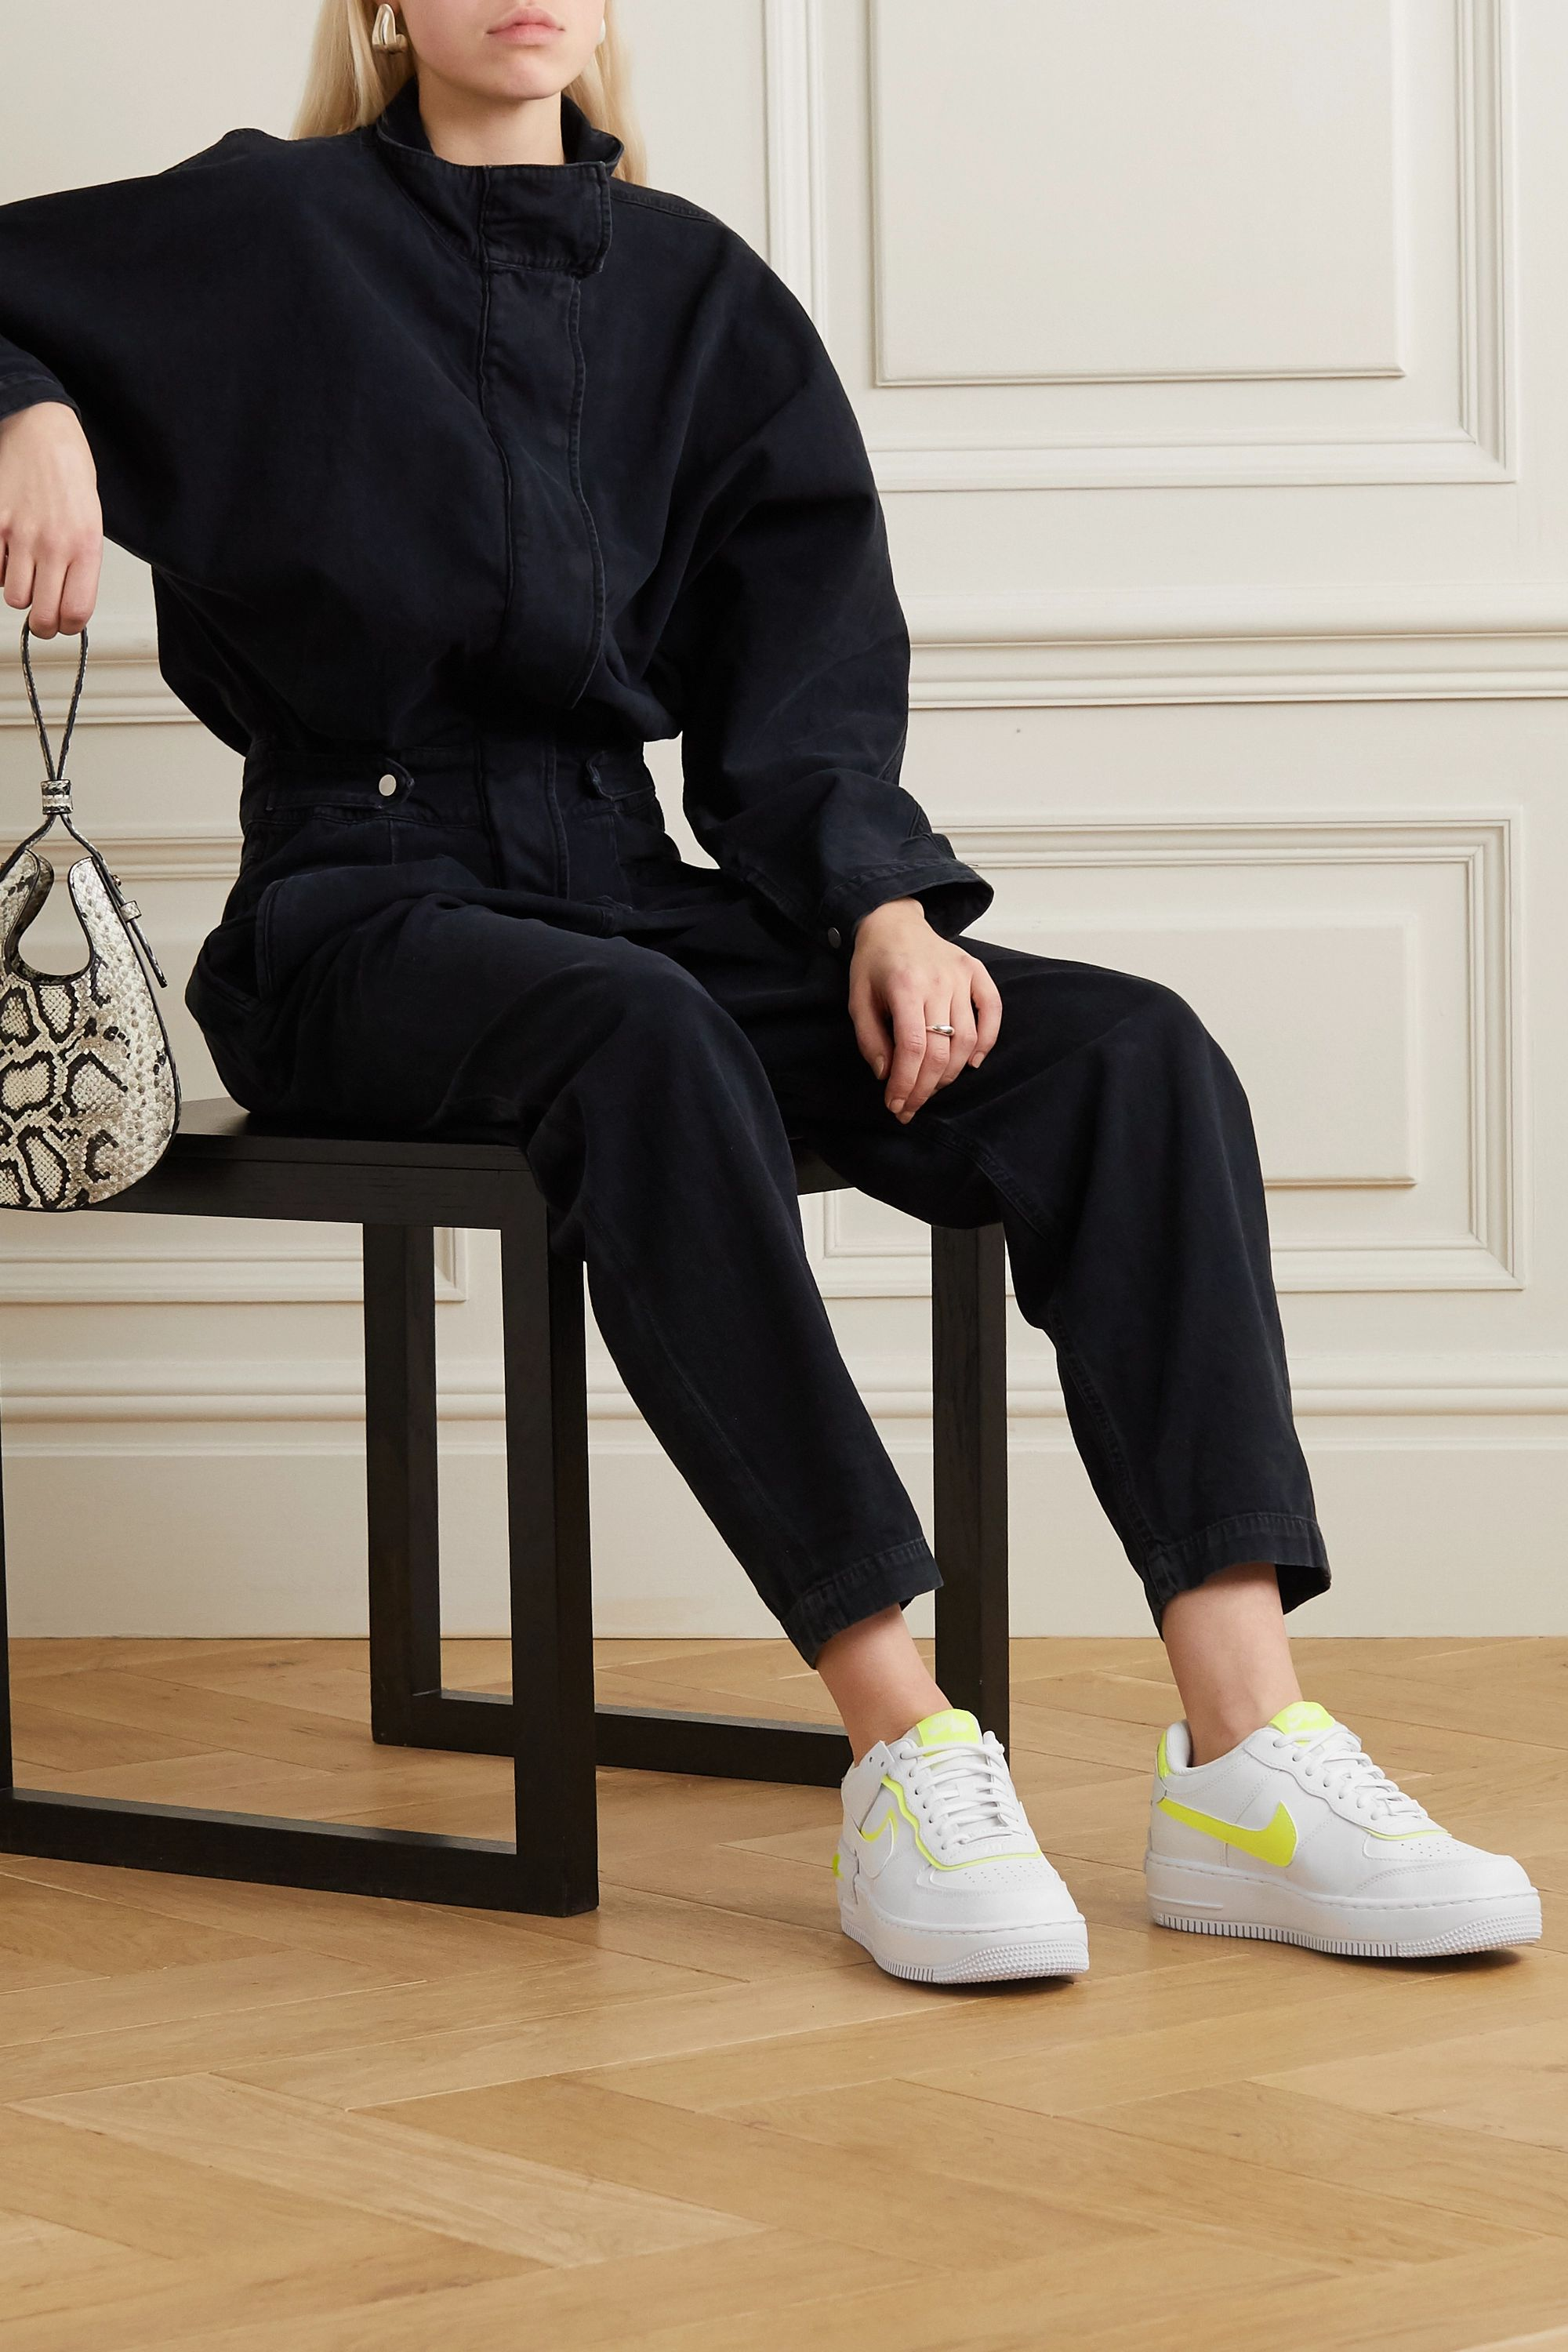 White Air Force 1 Shadow Neon Leather Sneakers Nike Net A Porter This new edition of the af1 shadow has a double look that enhances the dna of the traditional af1. air force 1 shadow neon leather sneakers